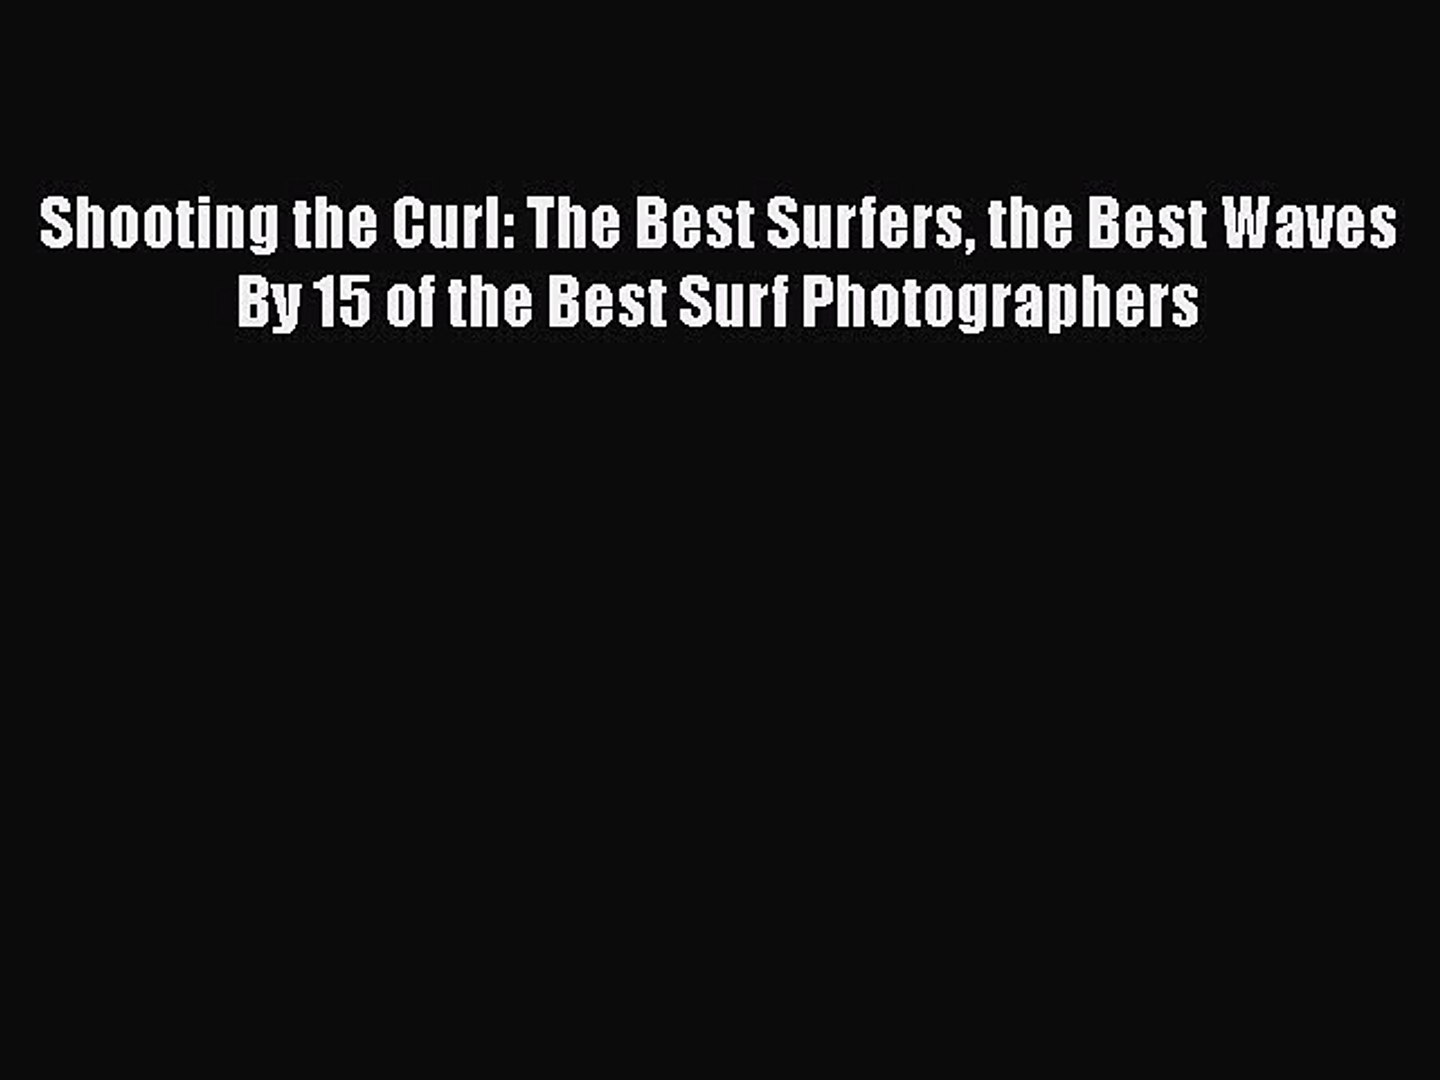 [Read Book] Shooting the Curl: The Best Surfers the Best Waves By 15 of the Best Surf Photographers